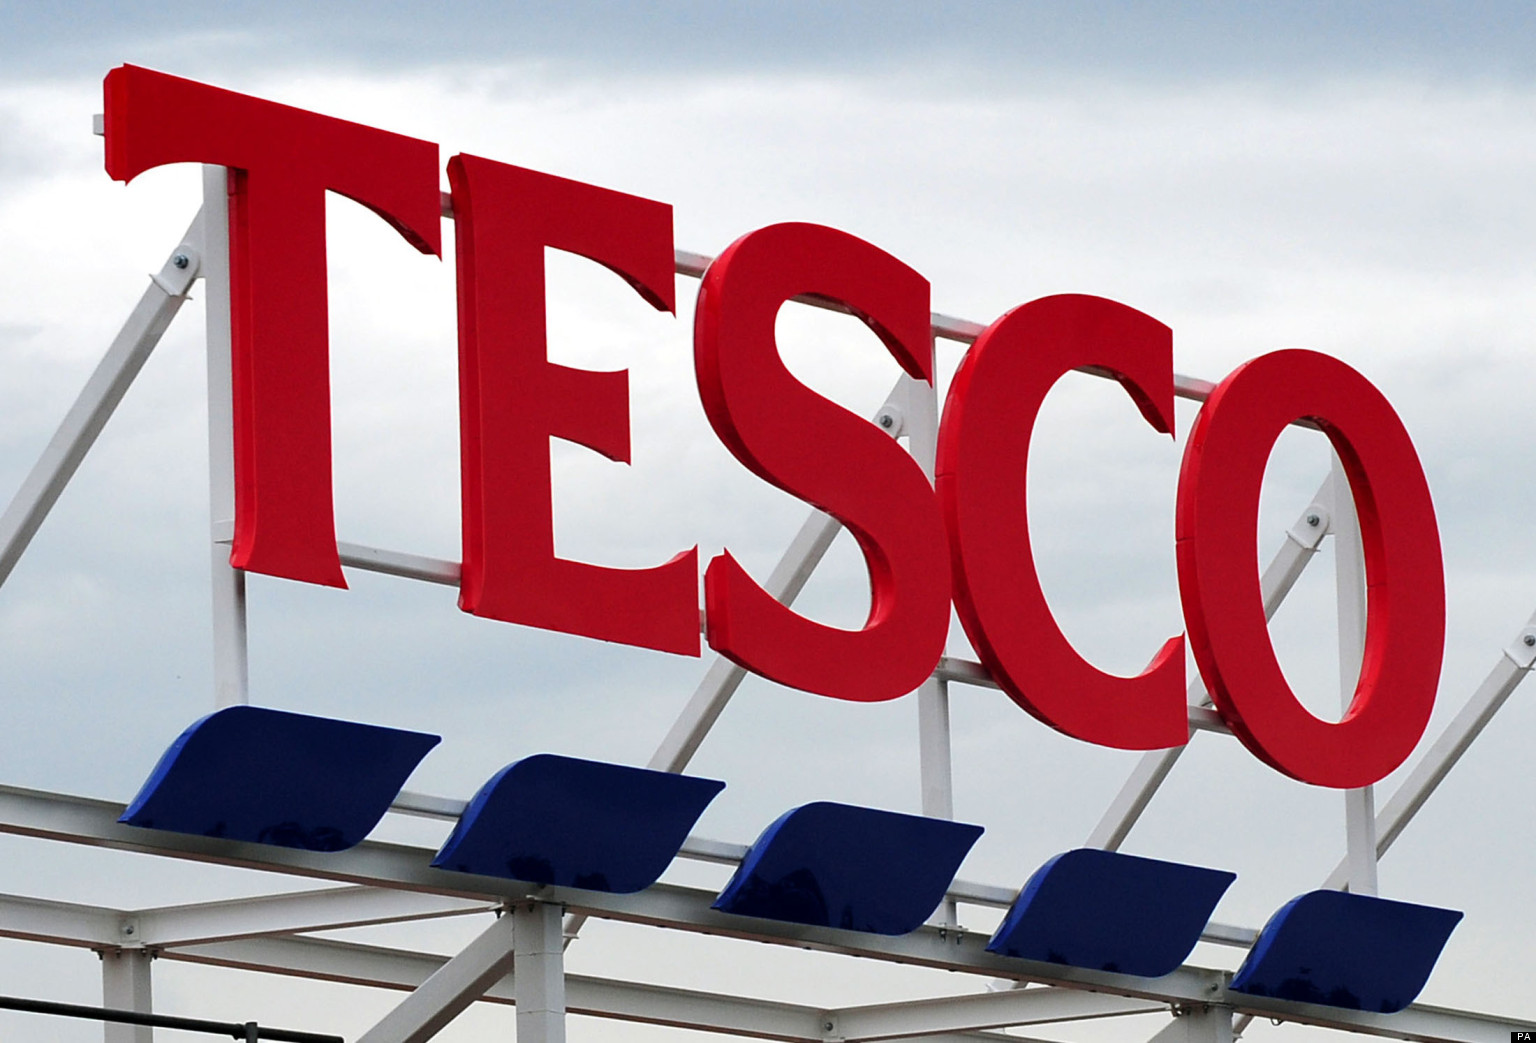 Police probe Tesco fraud